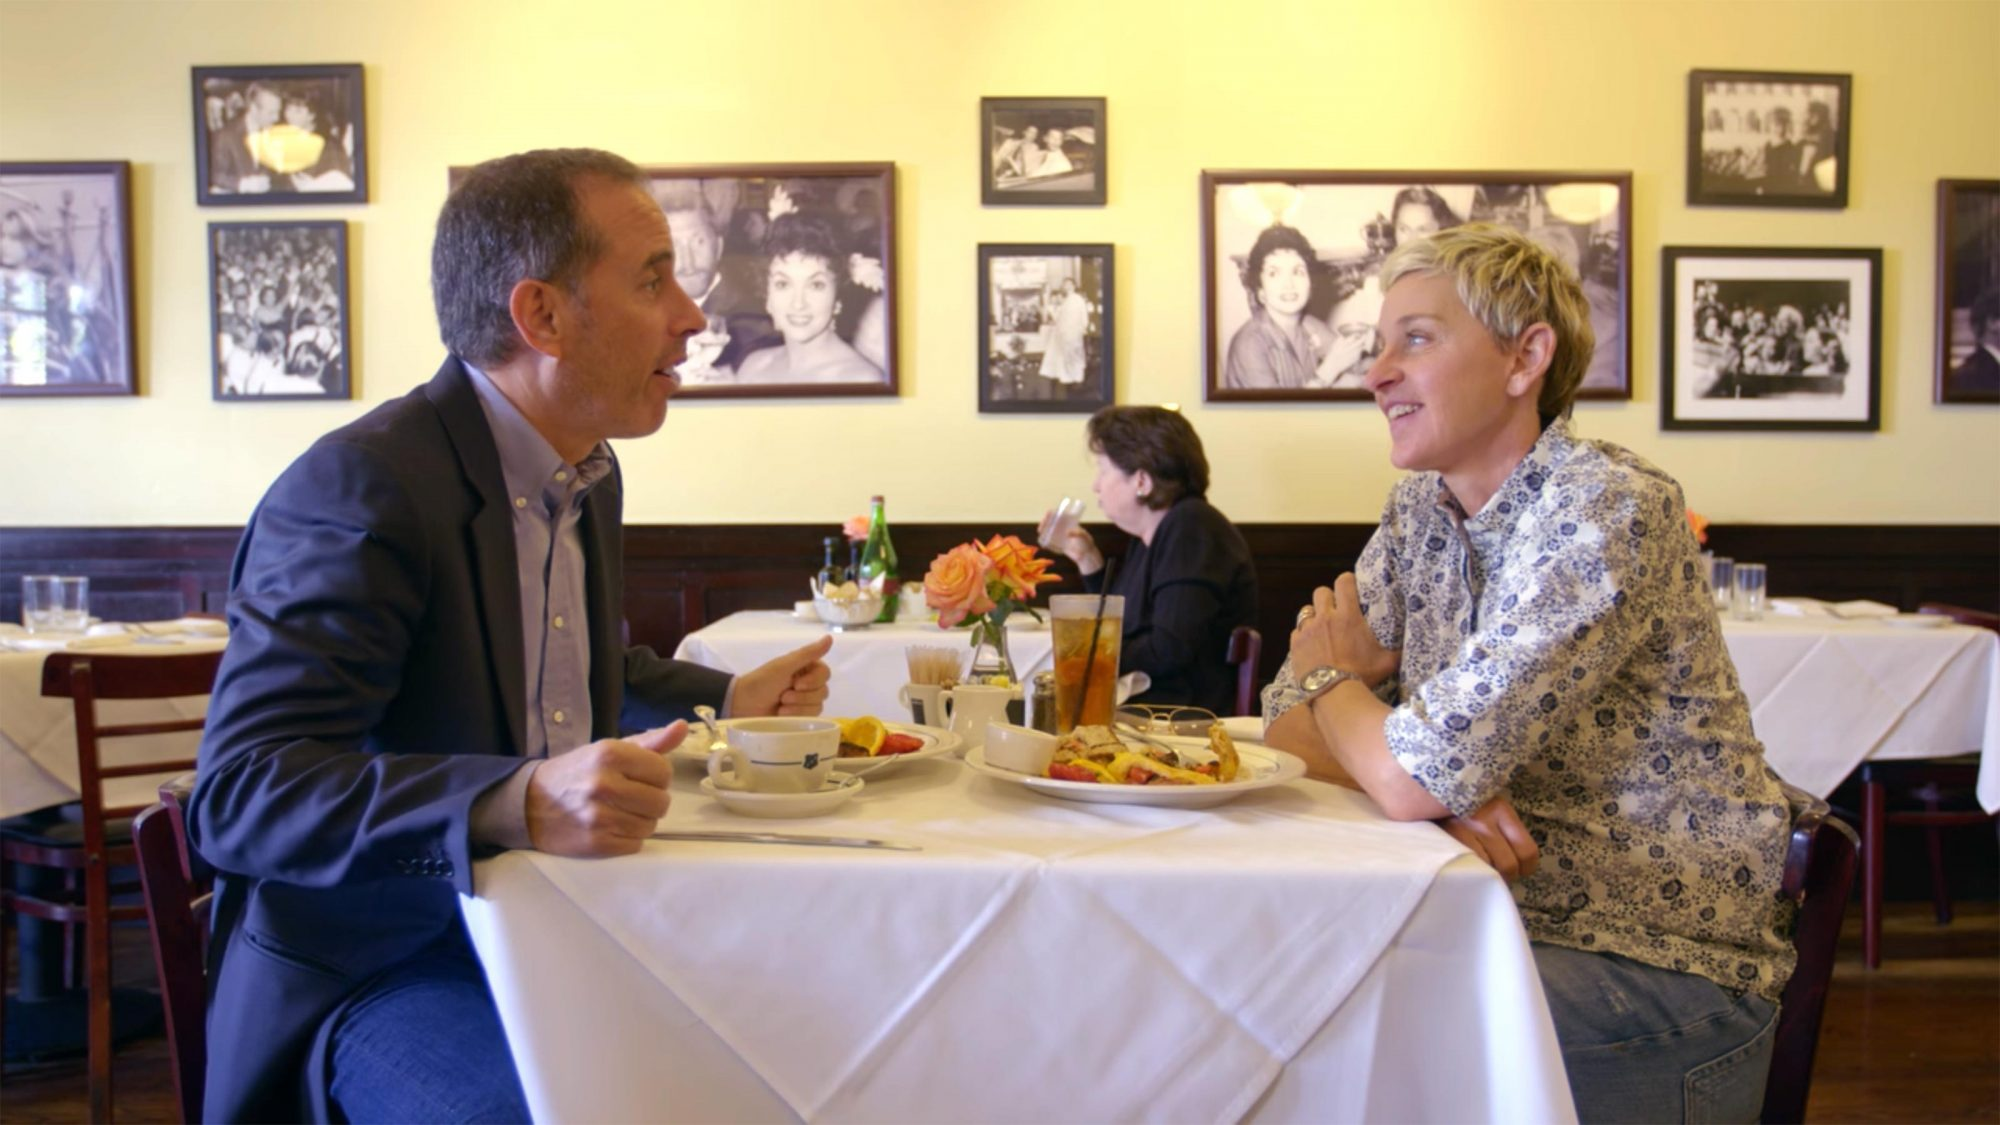 Comedians-in-Cars-Getting-Coffee-S5-E3